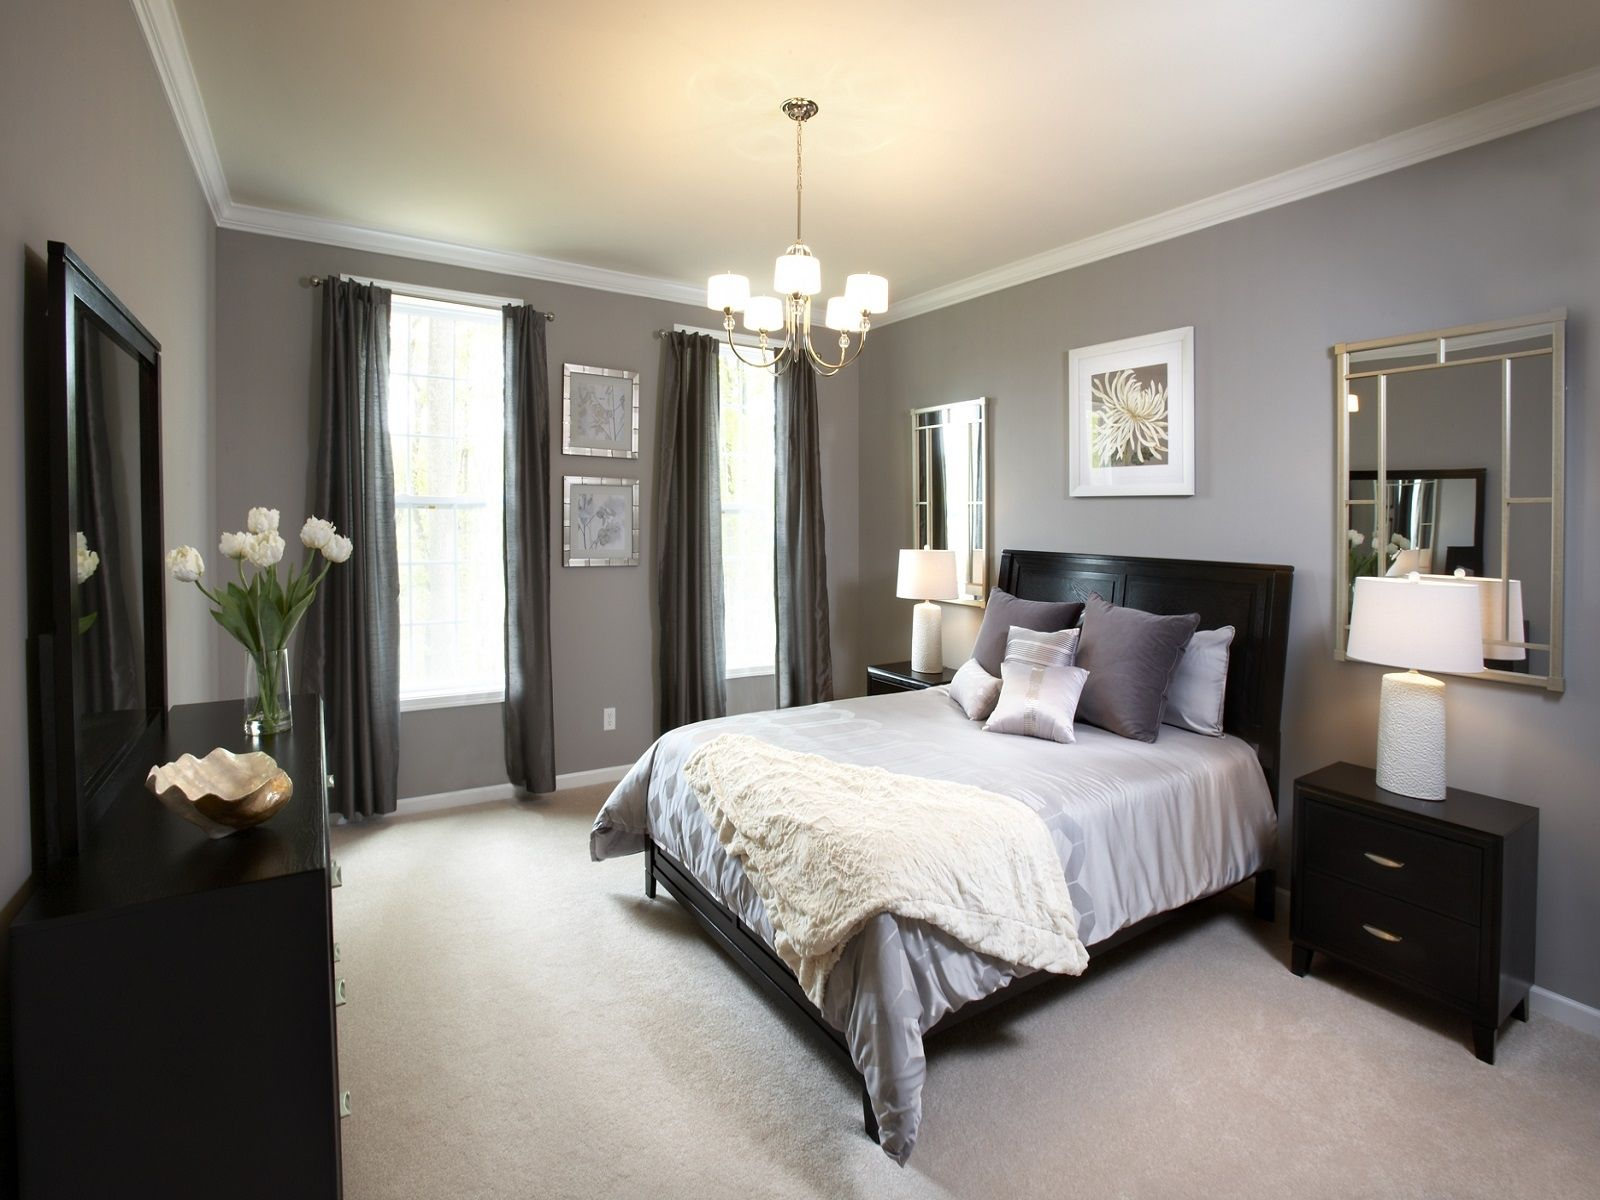 Best 25+ Black and grey bedroom ideas on Pinterest | Black white ...